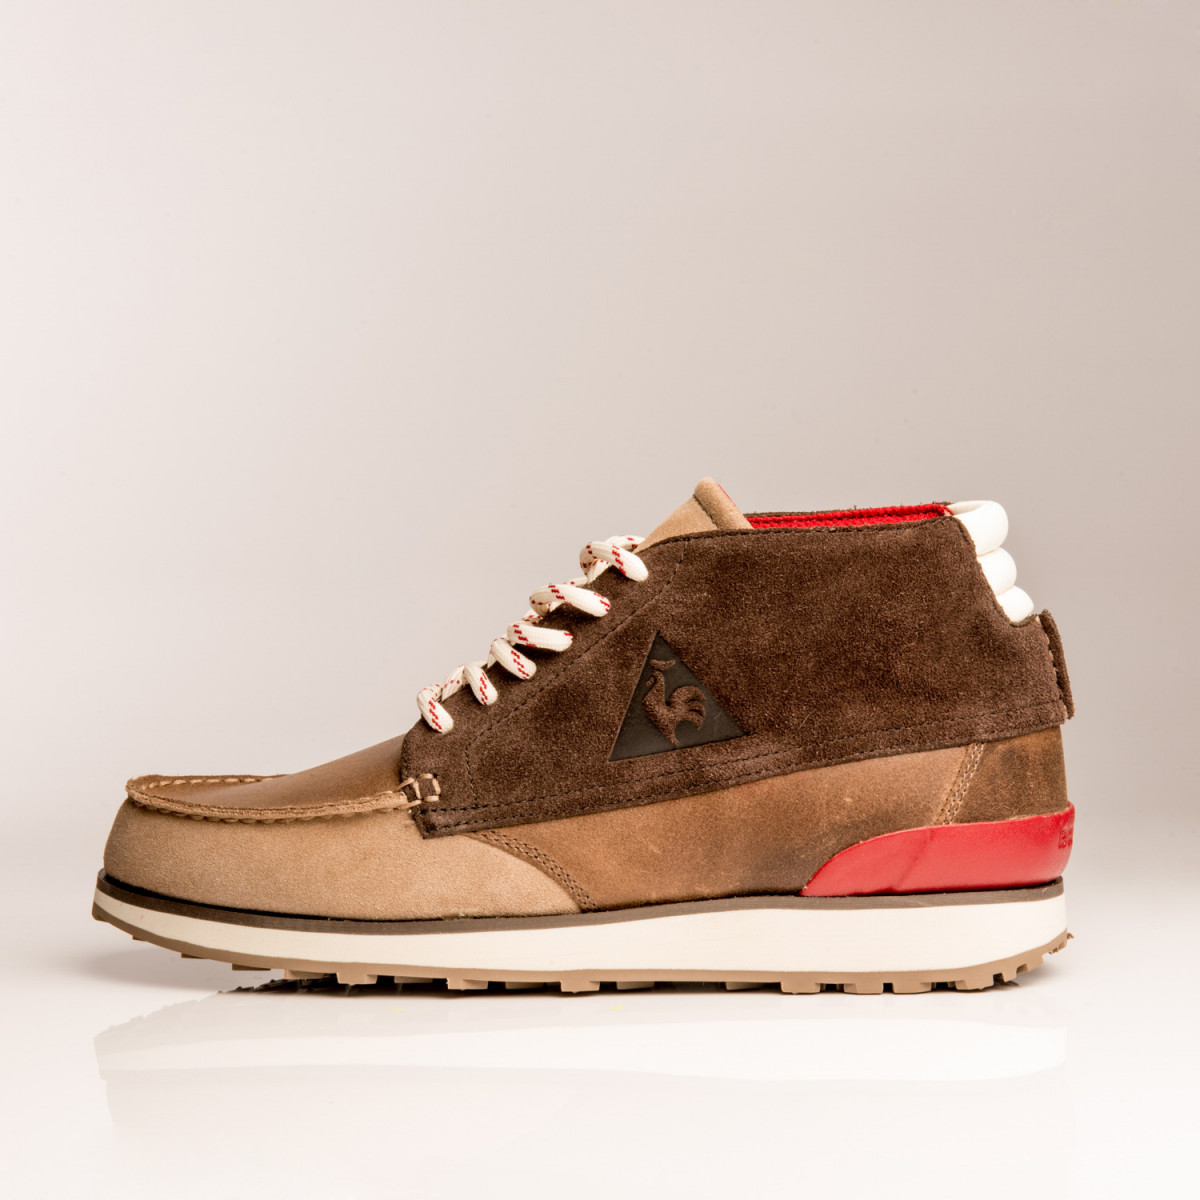 ZAPATILLAS LE COQ SPORTIF MONTROUGE